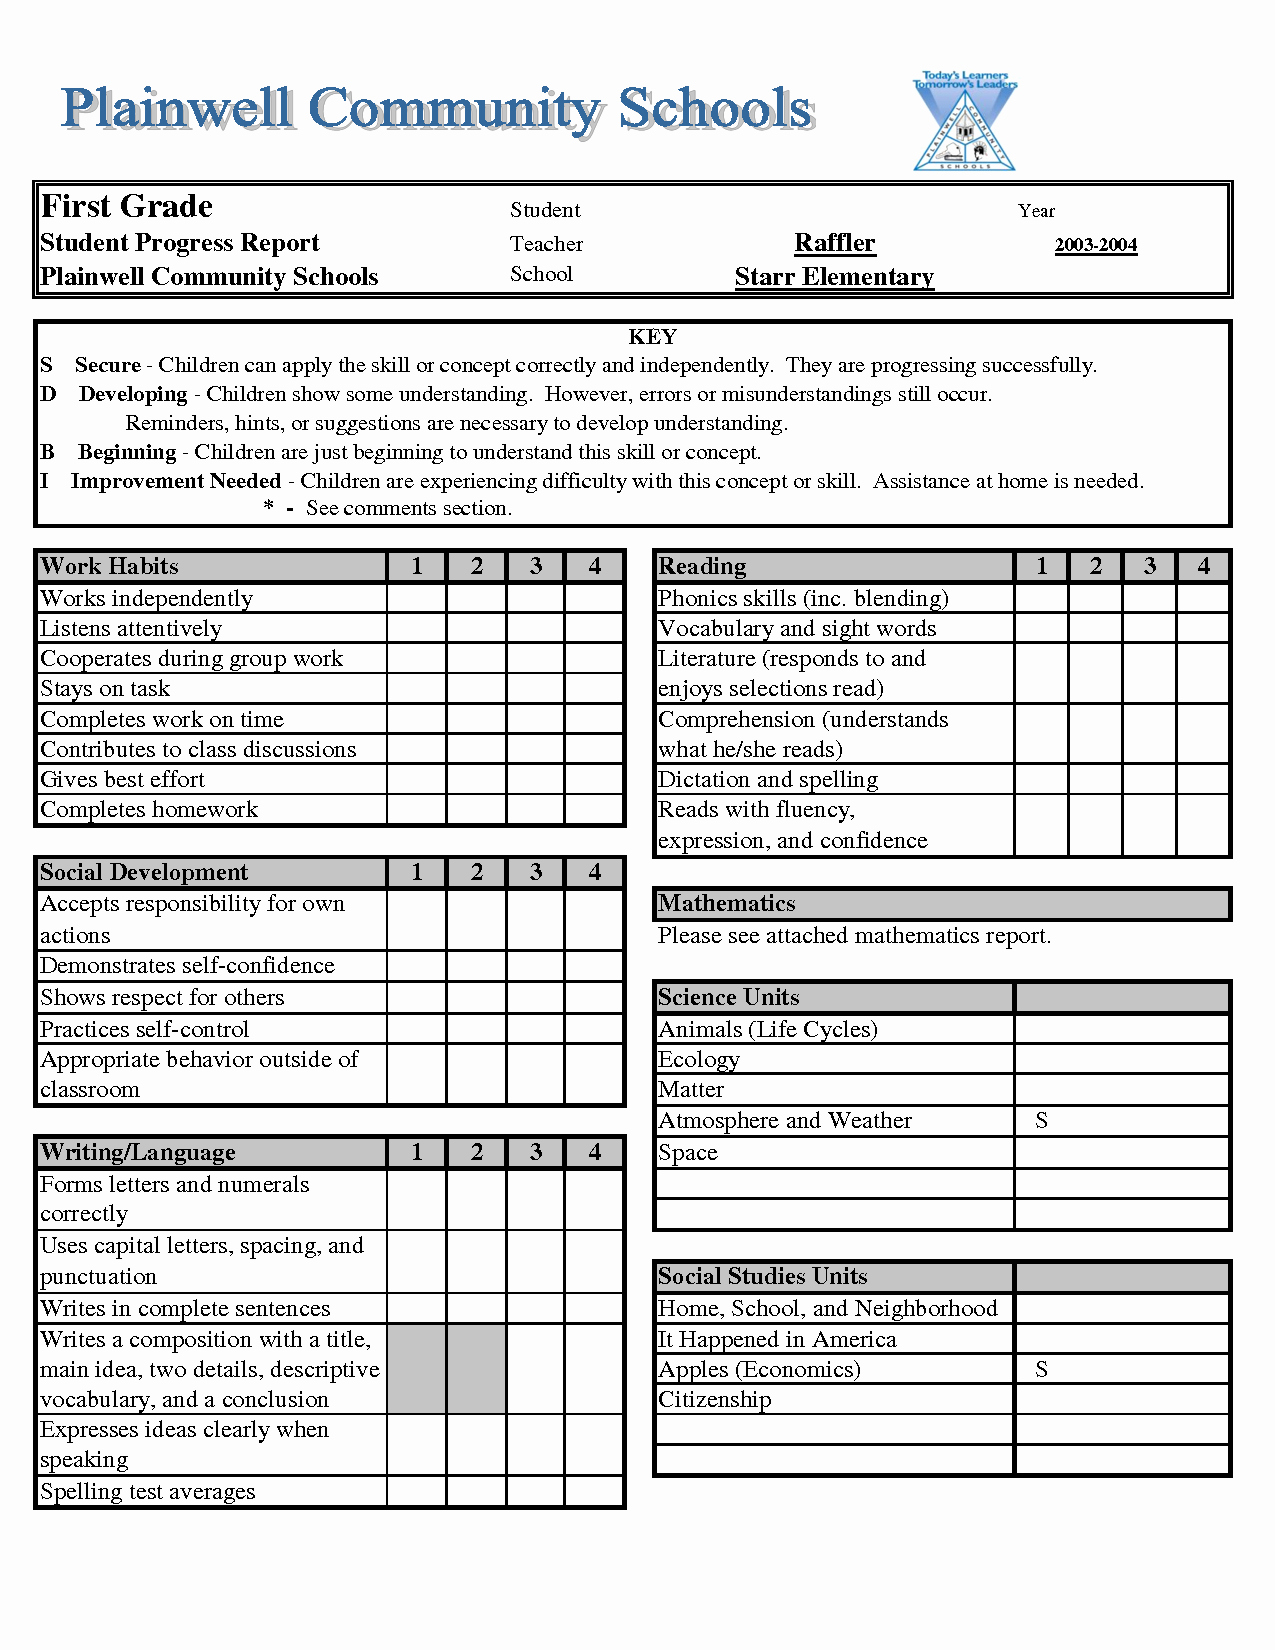 Kindergarten Progress Report Template Unique Report Card Template Excel Xls Download Legal Documents